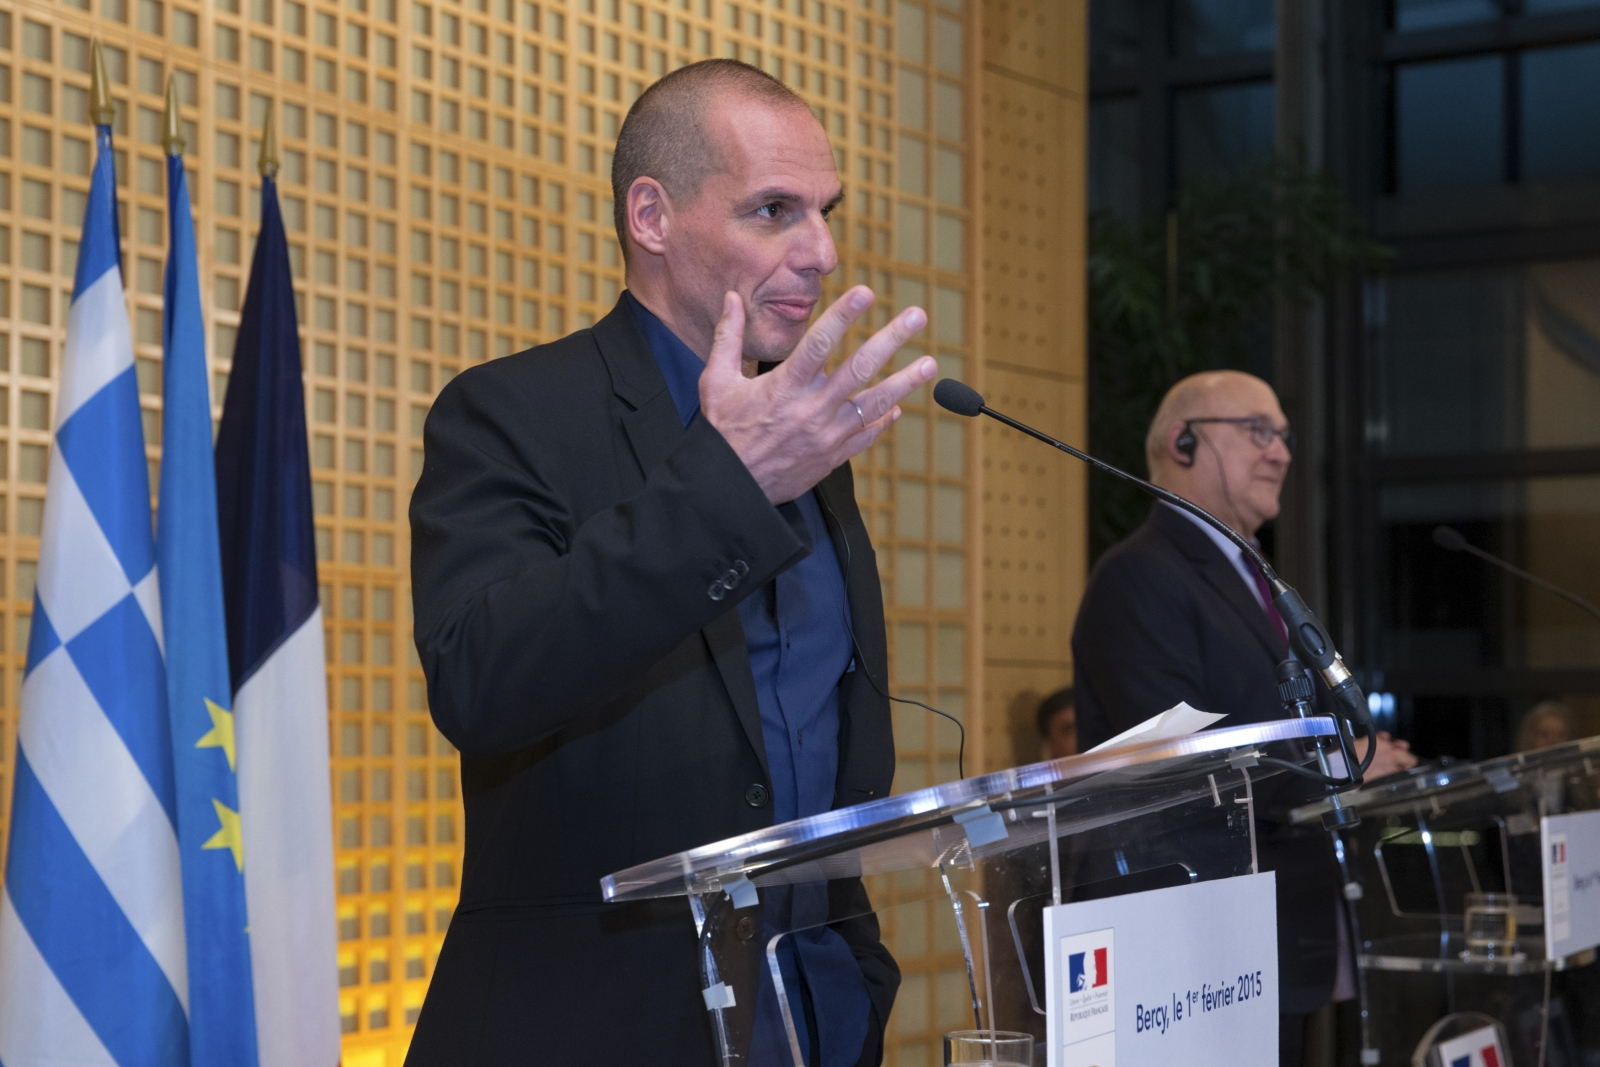 French Finance Minister Michel Sapin (R) and Greek Finance Minister Yanis Varoufakis attend a joint news conference after a meeting at the Bercy Finance Ministry in Paris February 1, 2015.